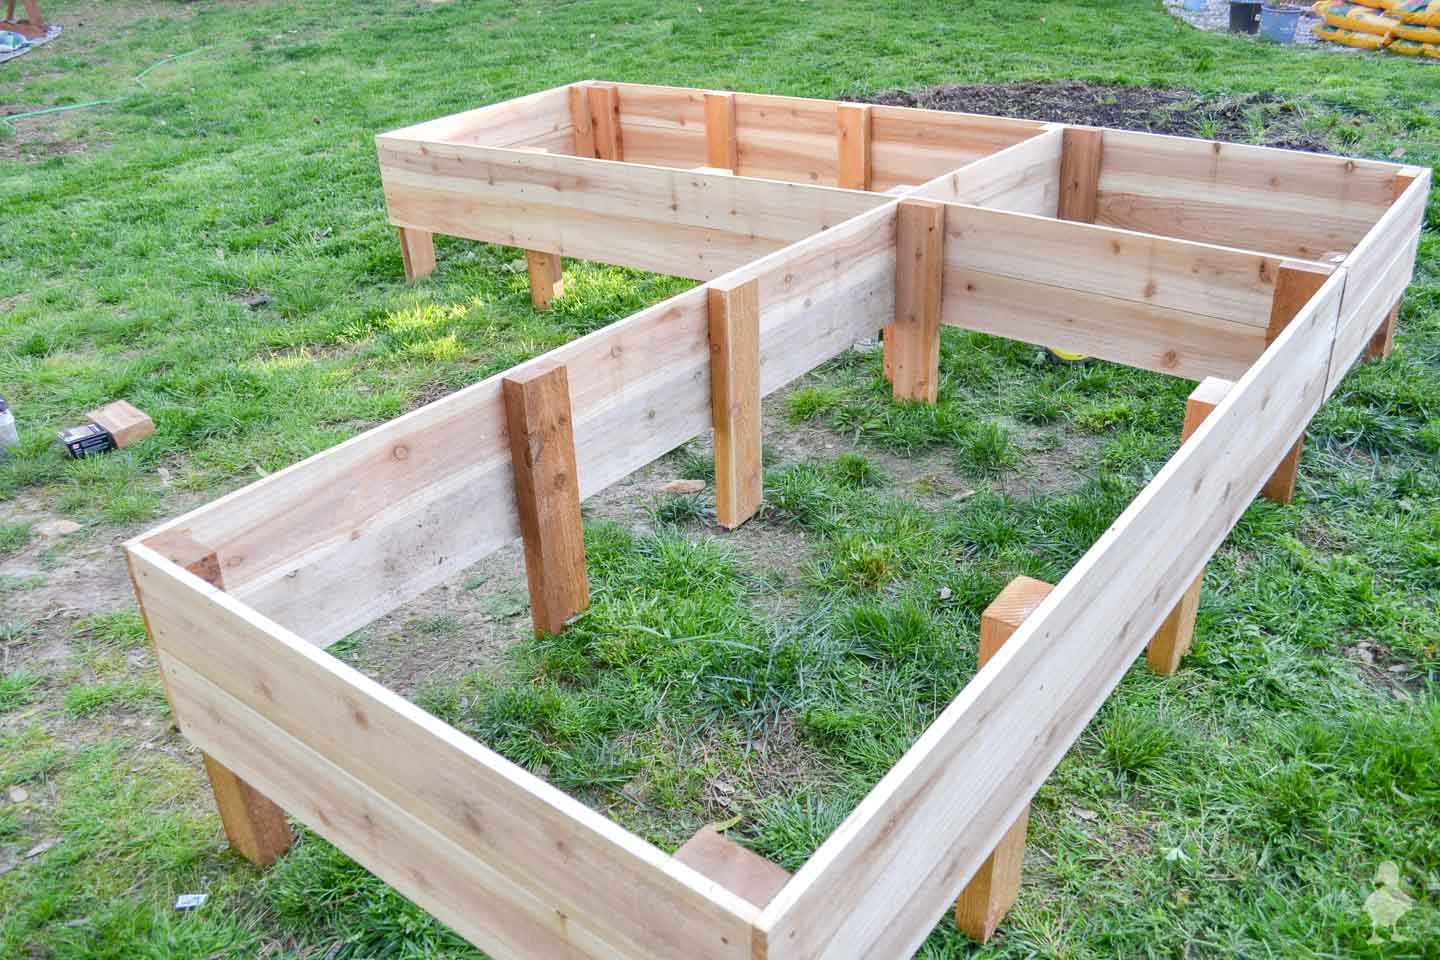 cedar raised garden beds before digging into the ground